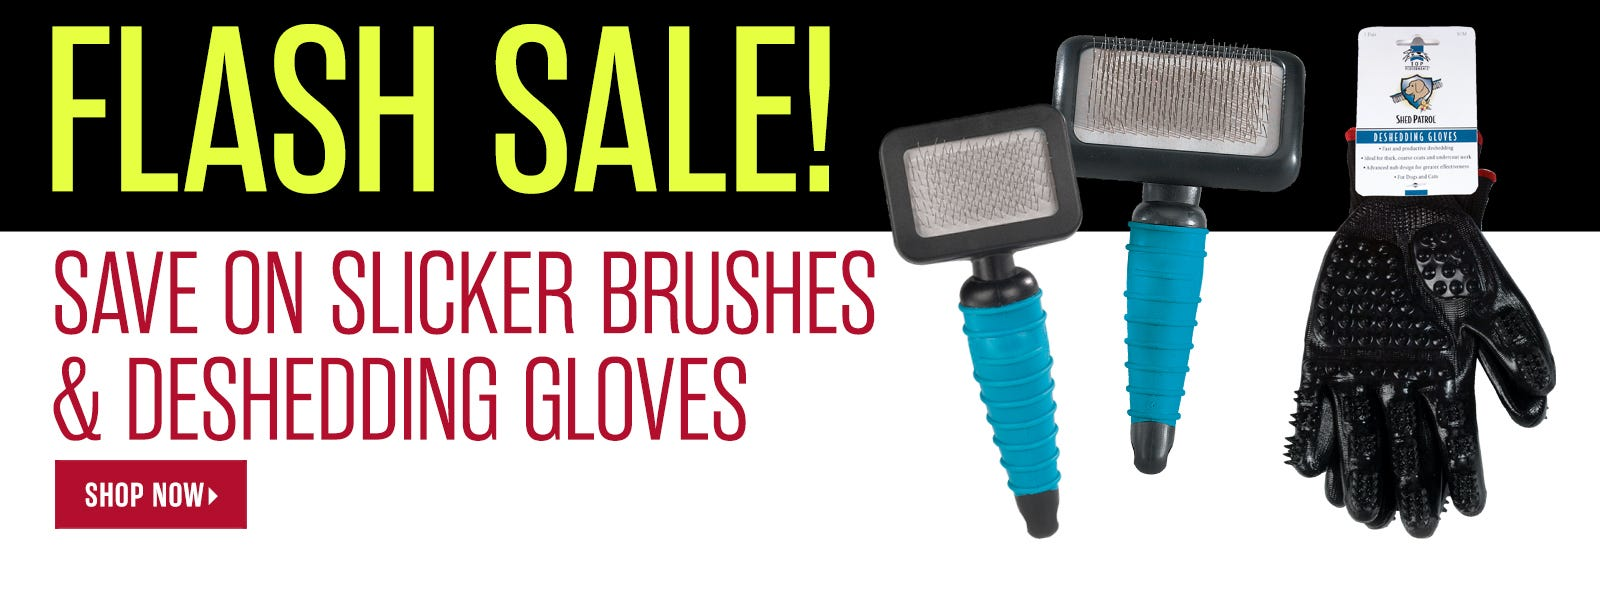 Gloves and Slicker Brushes Flash Sale